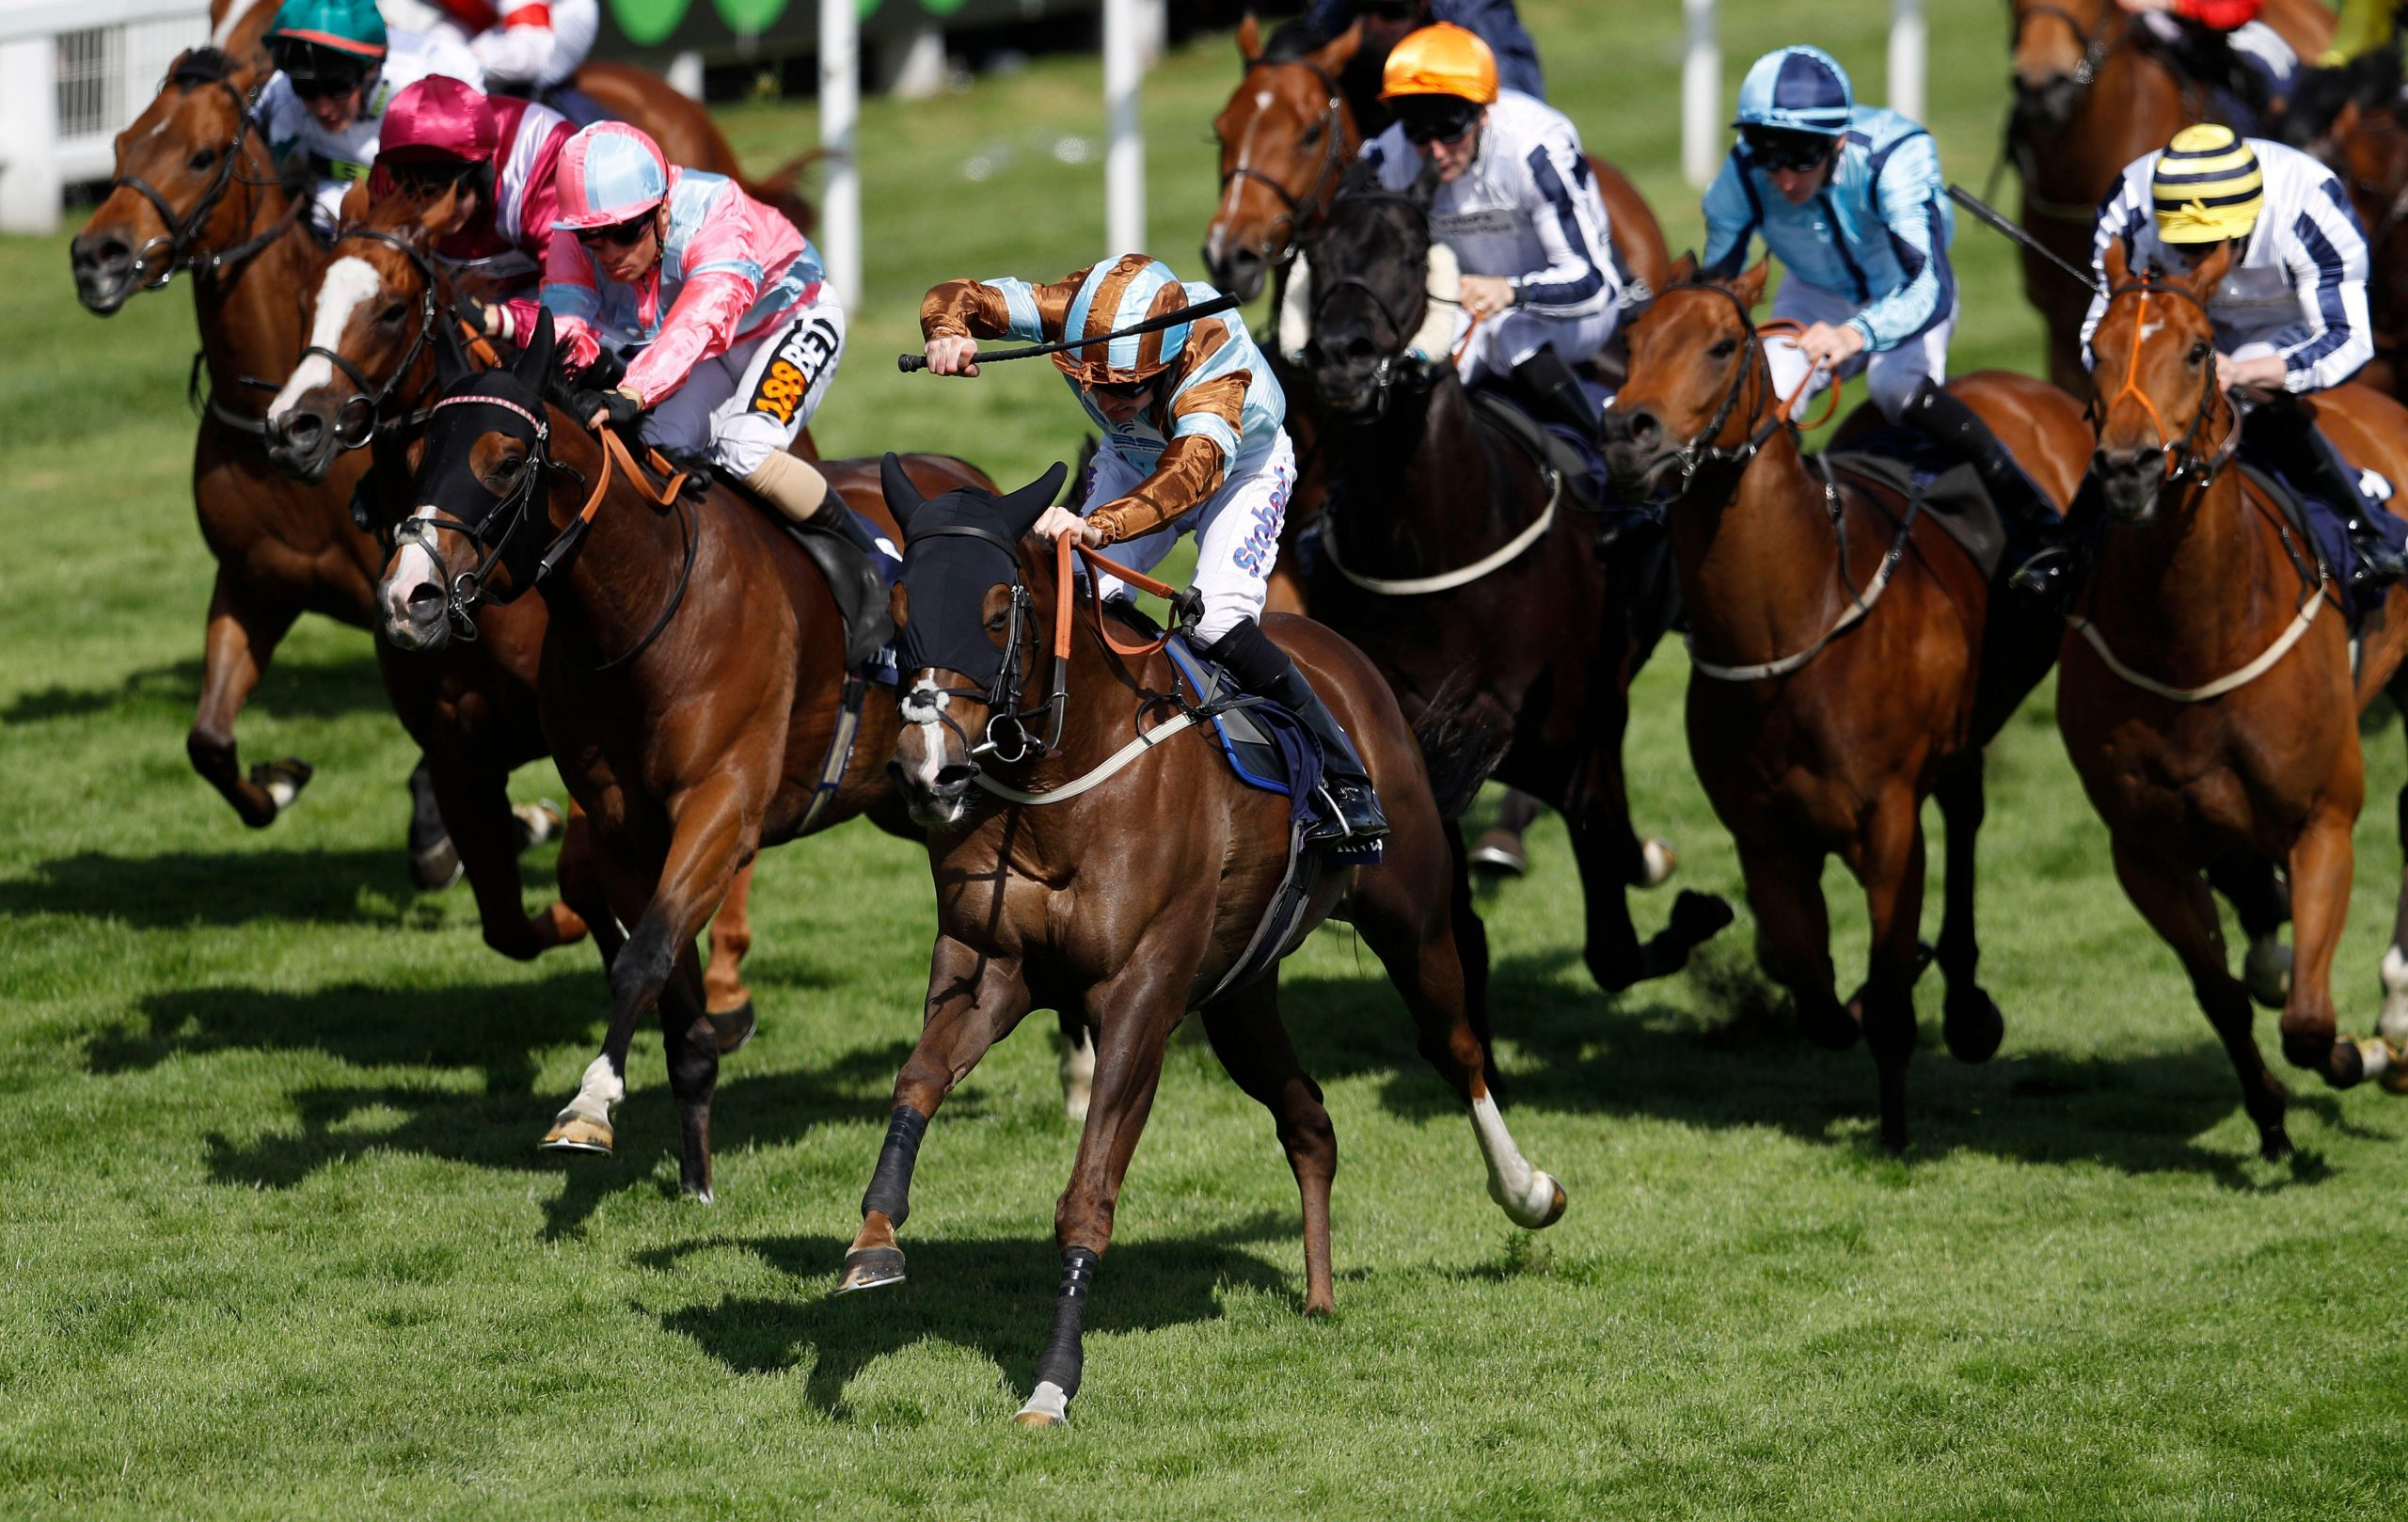 2EGCPND Britain Horse Racing - Derby Festival - Epsom Racecourse - June 3, 2017 Tom Eaves on Caspian Prince wins the 3:45 Investec Corporate Banking ?Dash? Handicap Reuters / Peter Nicholls Livepic EDITORIAL USE ONLY.